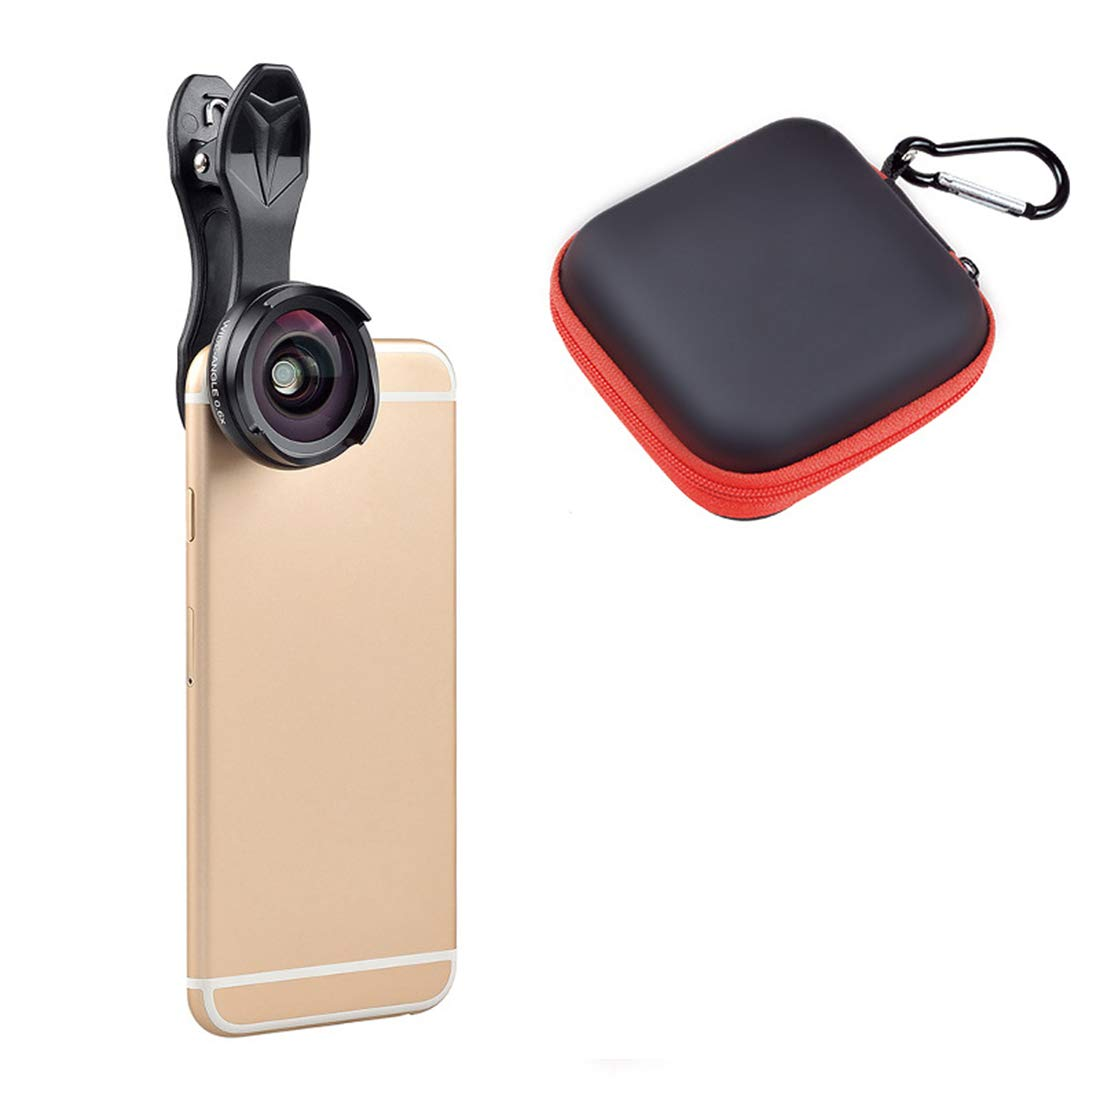 Kathleen Chance Smartphones 2 in 1 Smartphone Camera Lens Wide Angle Lens & Macro Lens for iPhone Samsung Android Most (Color : Black)